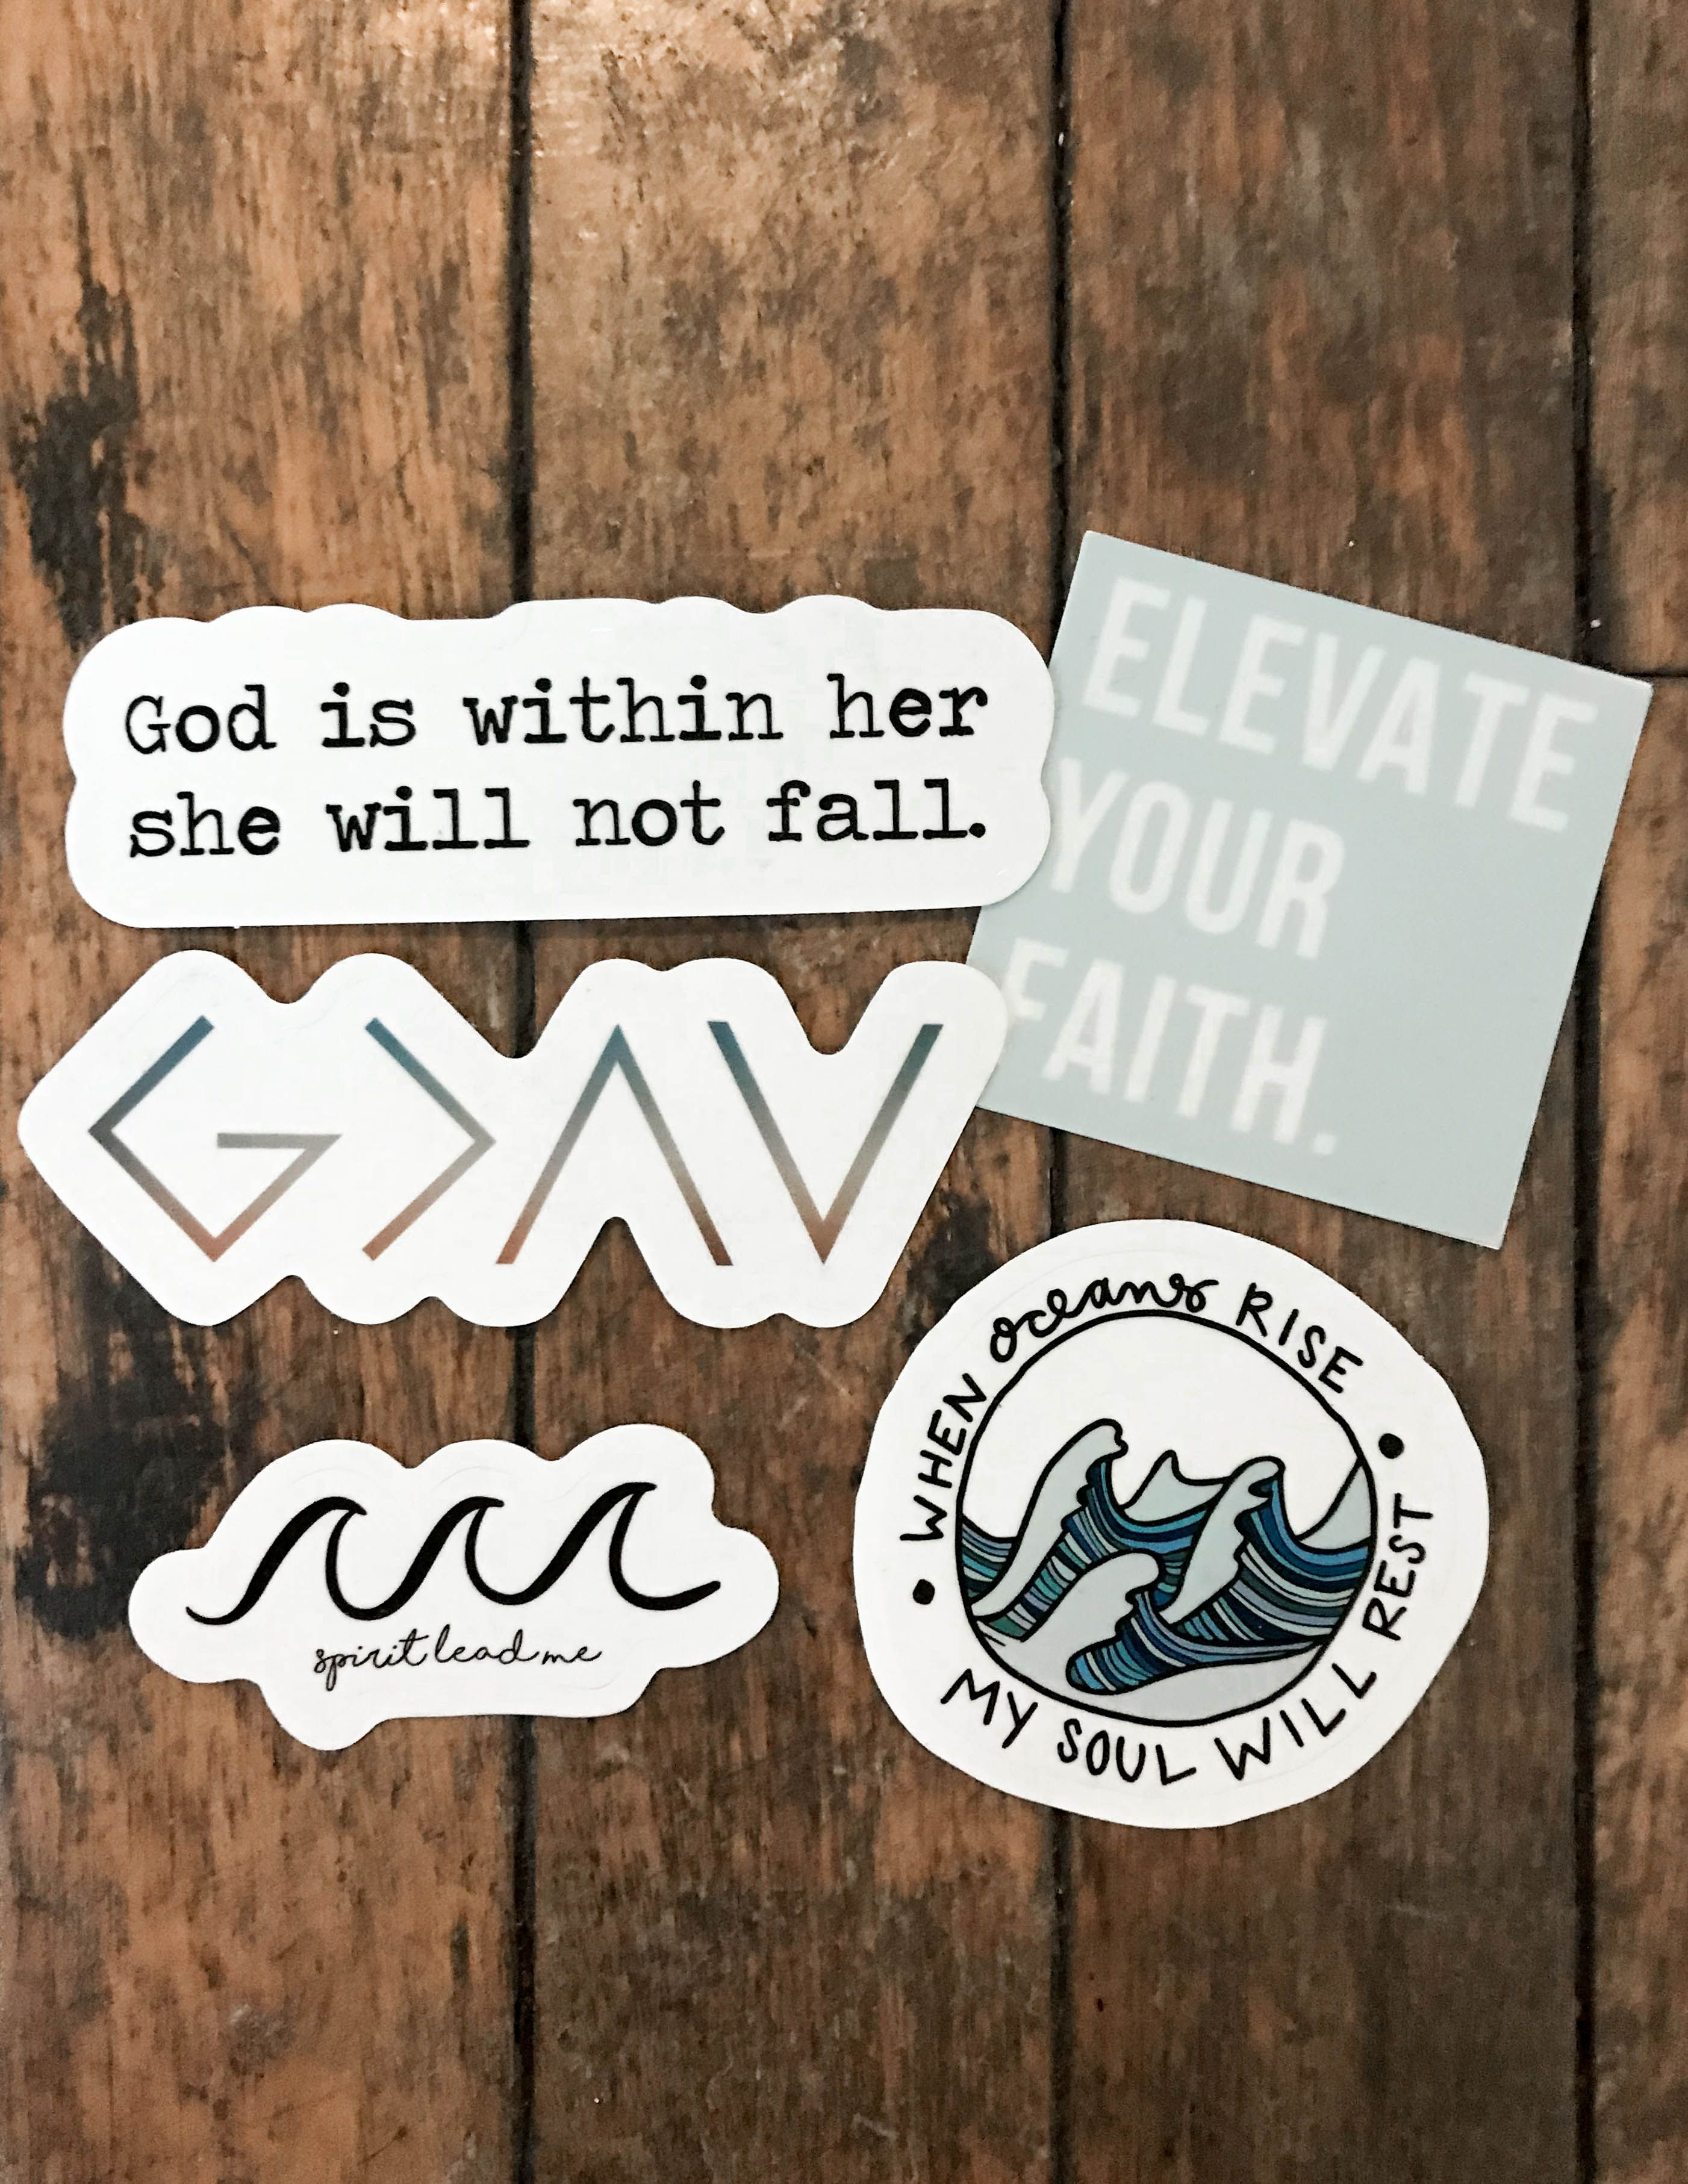 Elevated Faith Sticker Pack L Christian Gifts L Christian Stickers L Elevated Faith Faith Stickers Christian Stickers Hydroflask Stickers [ 3627 x 2803 Pixel ]